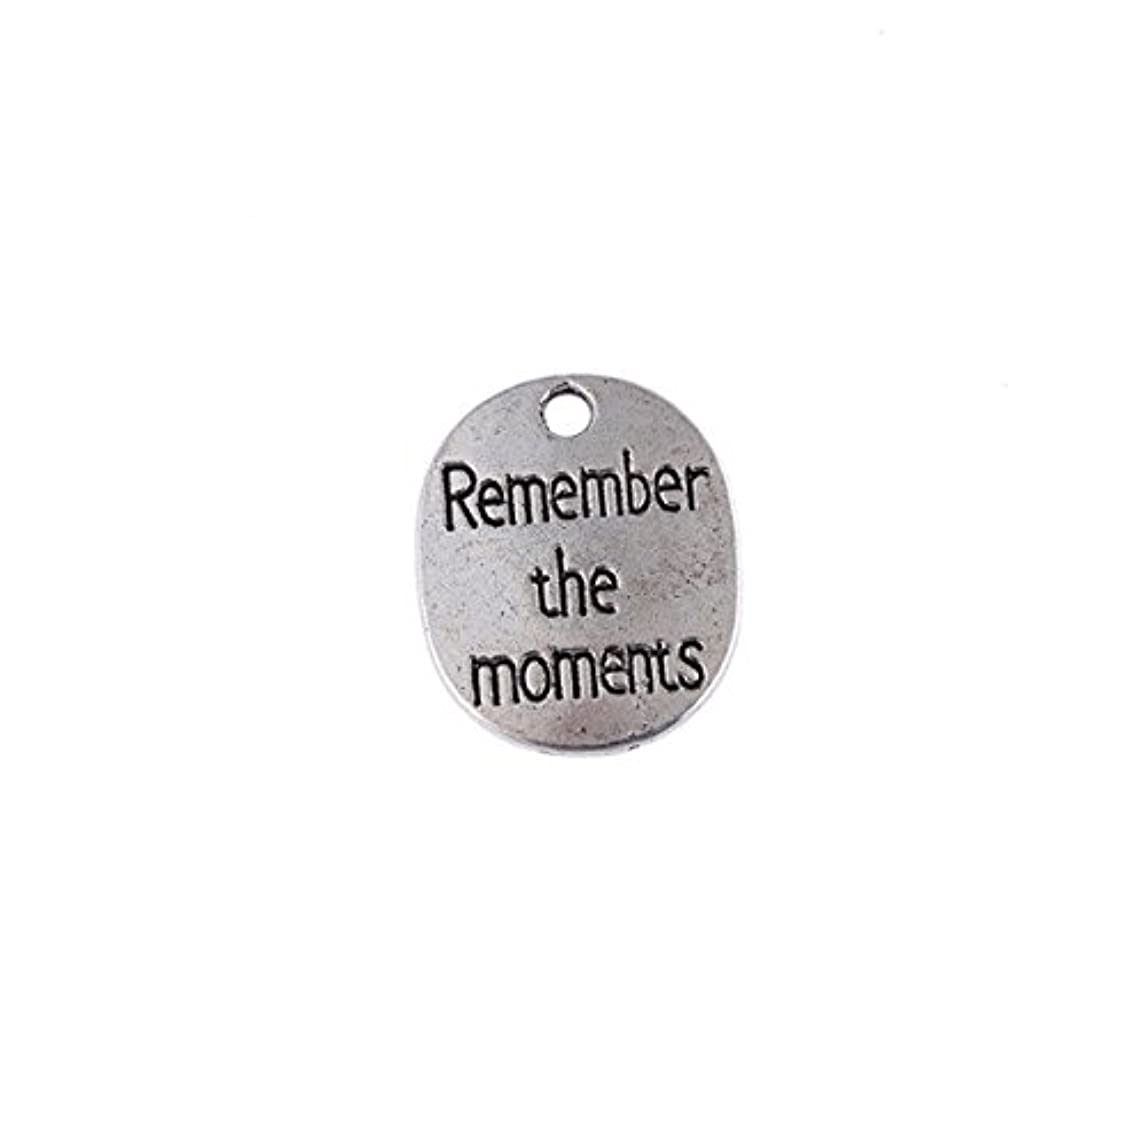 Remember The Moments Charm lot Set of 20 for Jewelry Making Inspirational Quote Charm